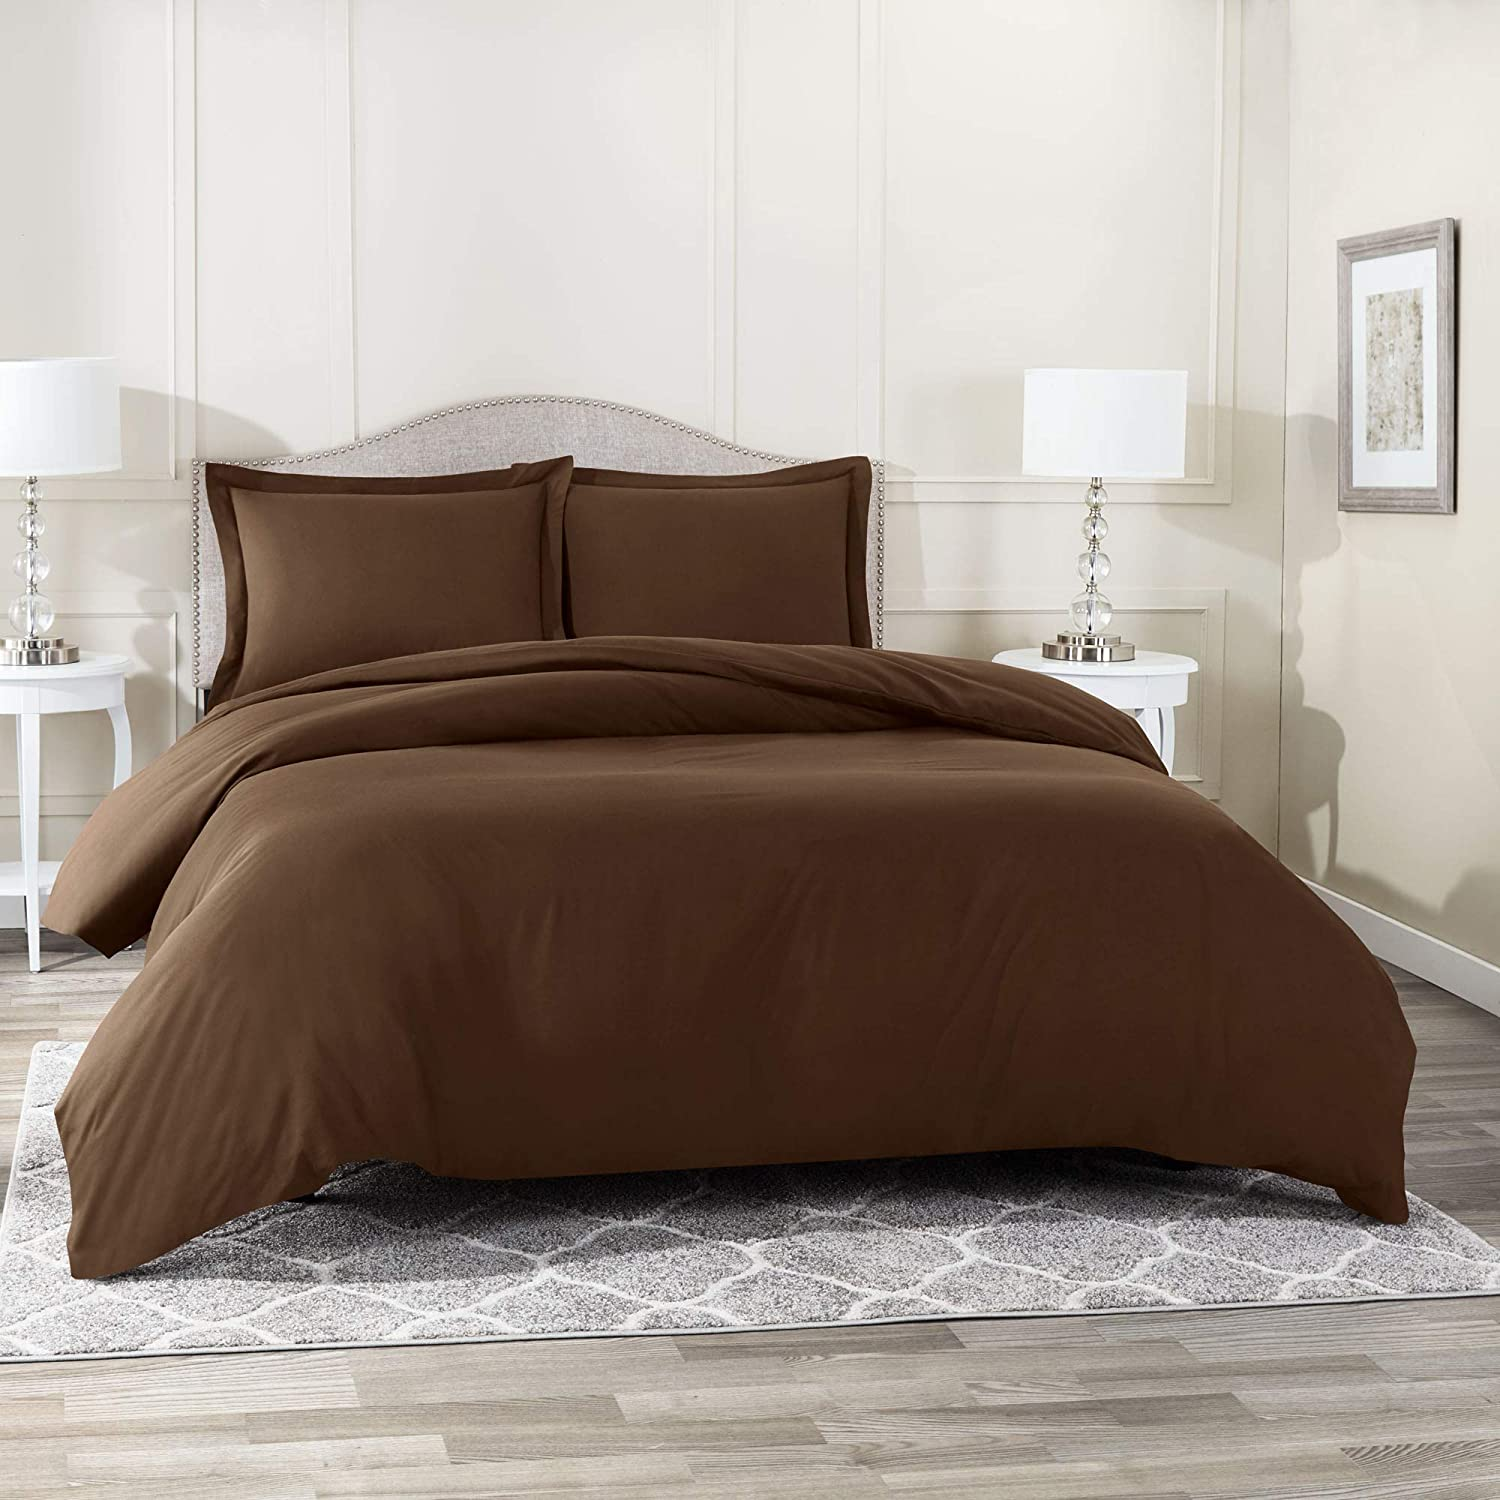 """Nestl Bedding Duvet Cover 2 Piece Set – Ultra Soft Double Brushed Microfiber Hotel Collection – Comforter Cover with Button Closure and 1 Pillow Sham, Chocolate - Twin (Single) 68""""x90"""""""